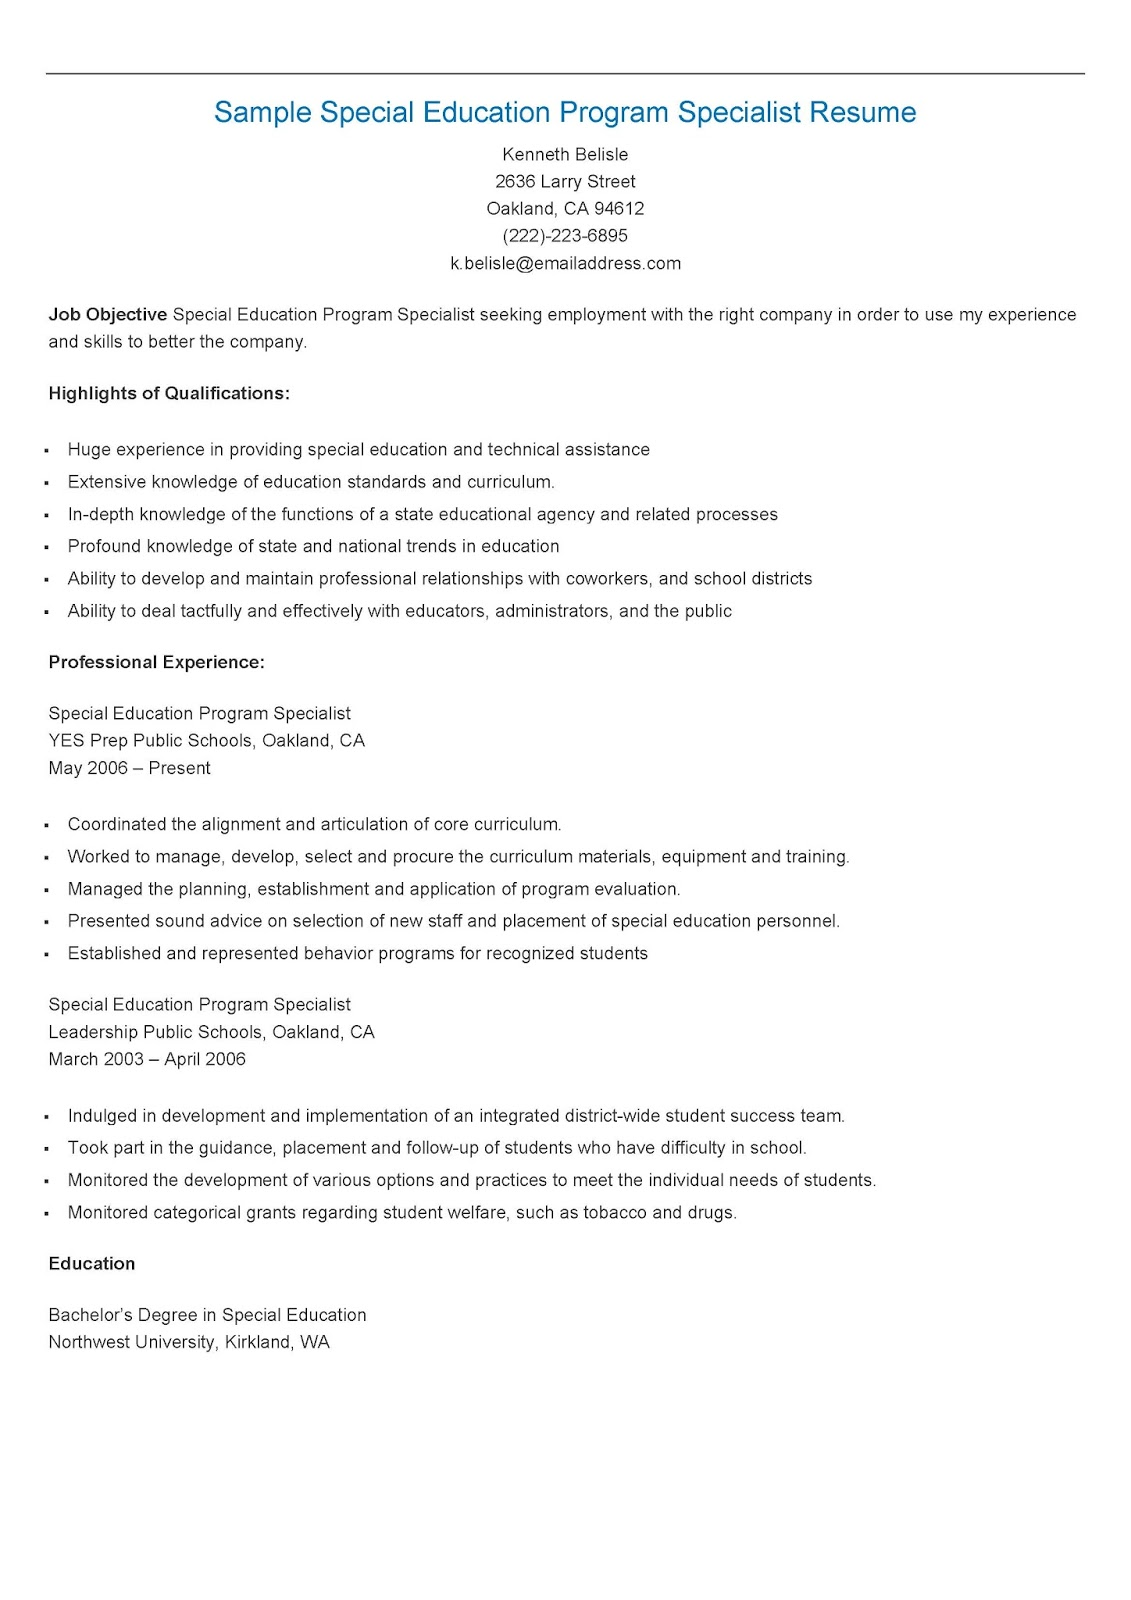 Resume Samples Sample Special Education Program. Resume Upload In Naukri. Uga Optimal Resume. Resume Writers Online. Retail Resume Objective. Computer Software To Put On Resume. Sample Resume For Health Care Aide. Possible Objectives For Resumes. Resume Definition